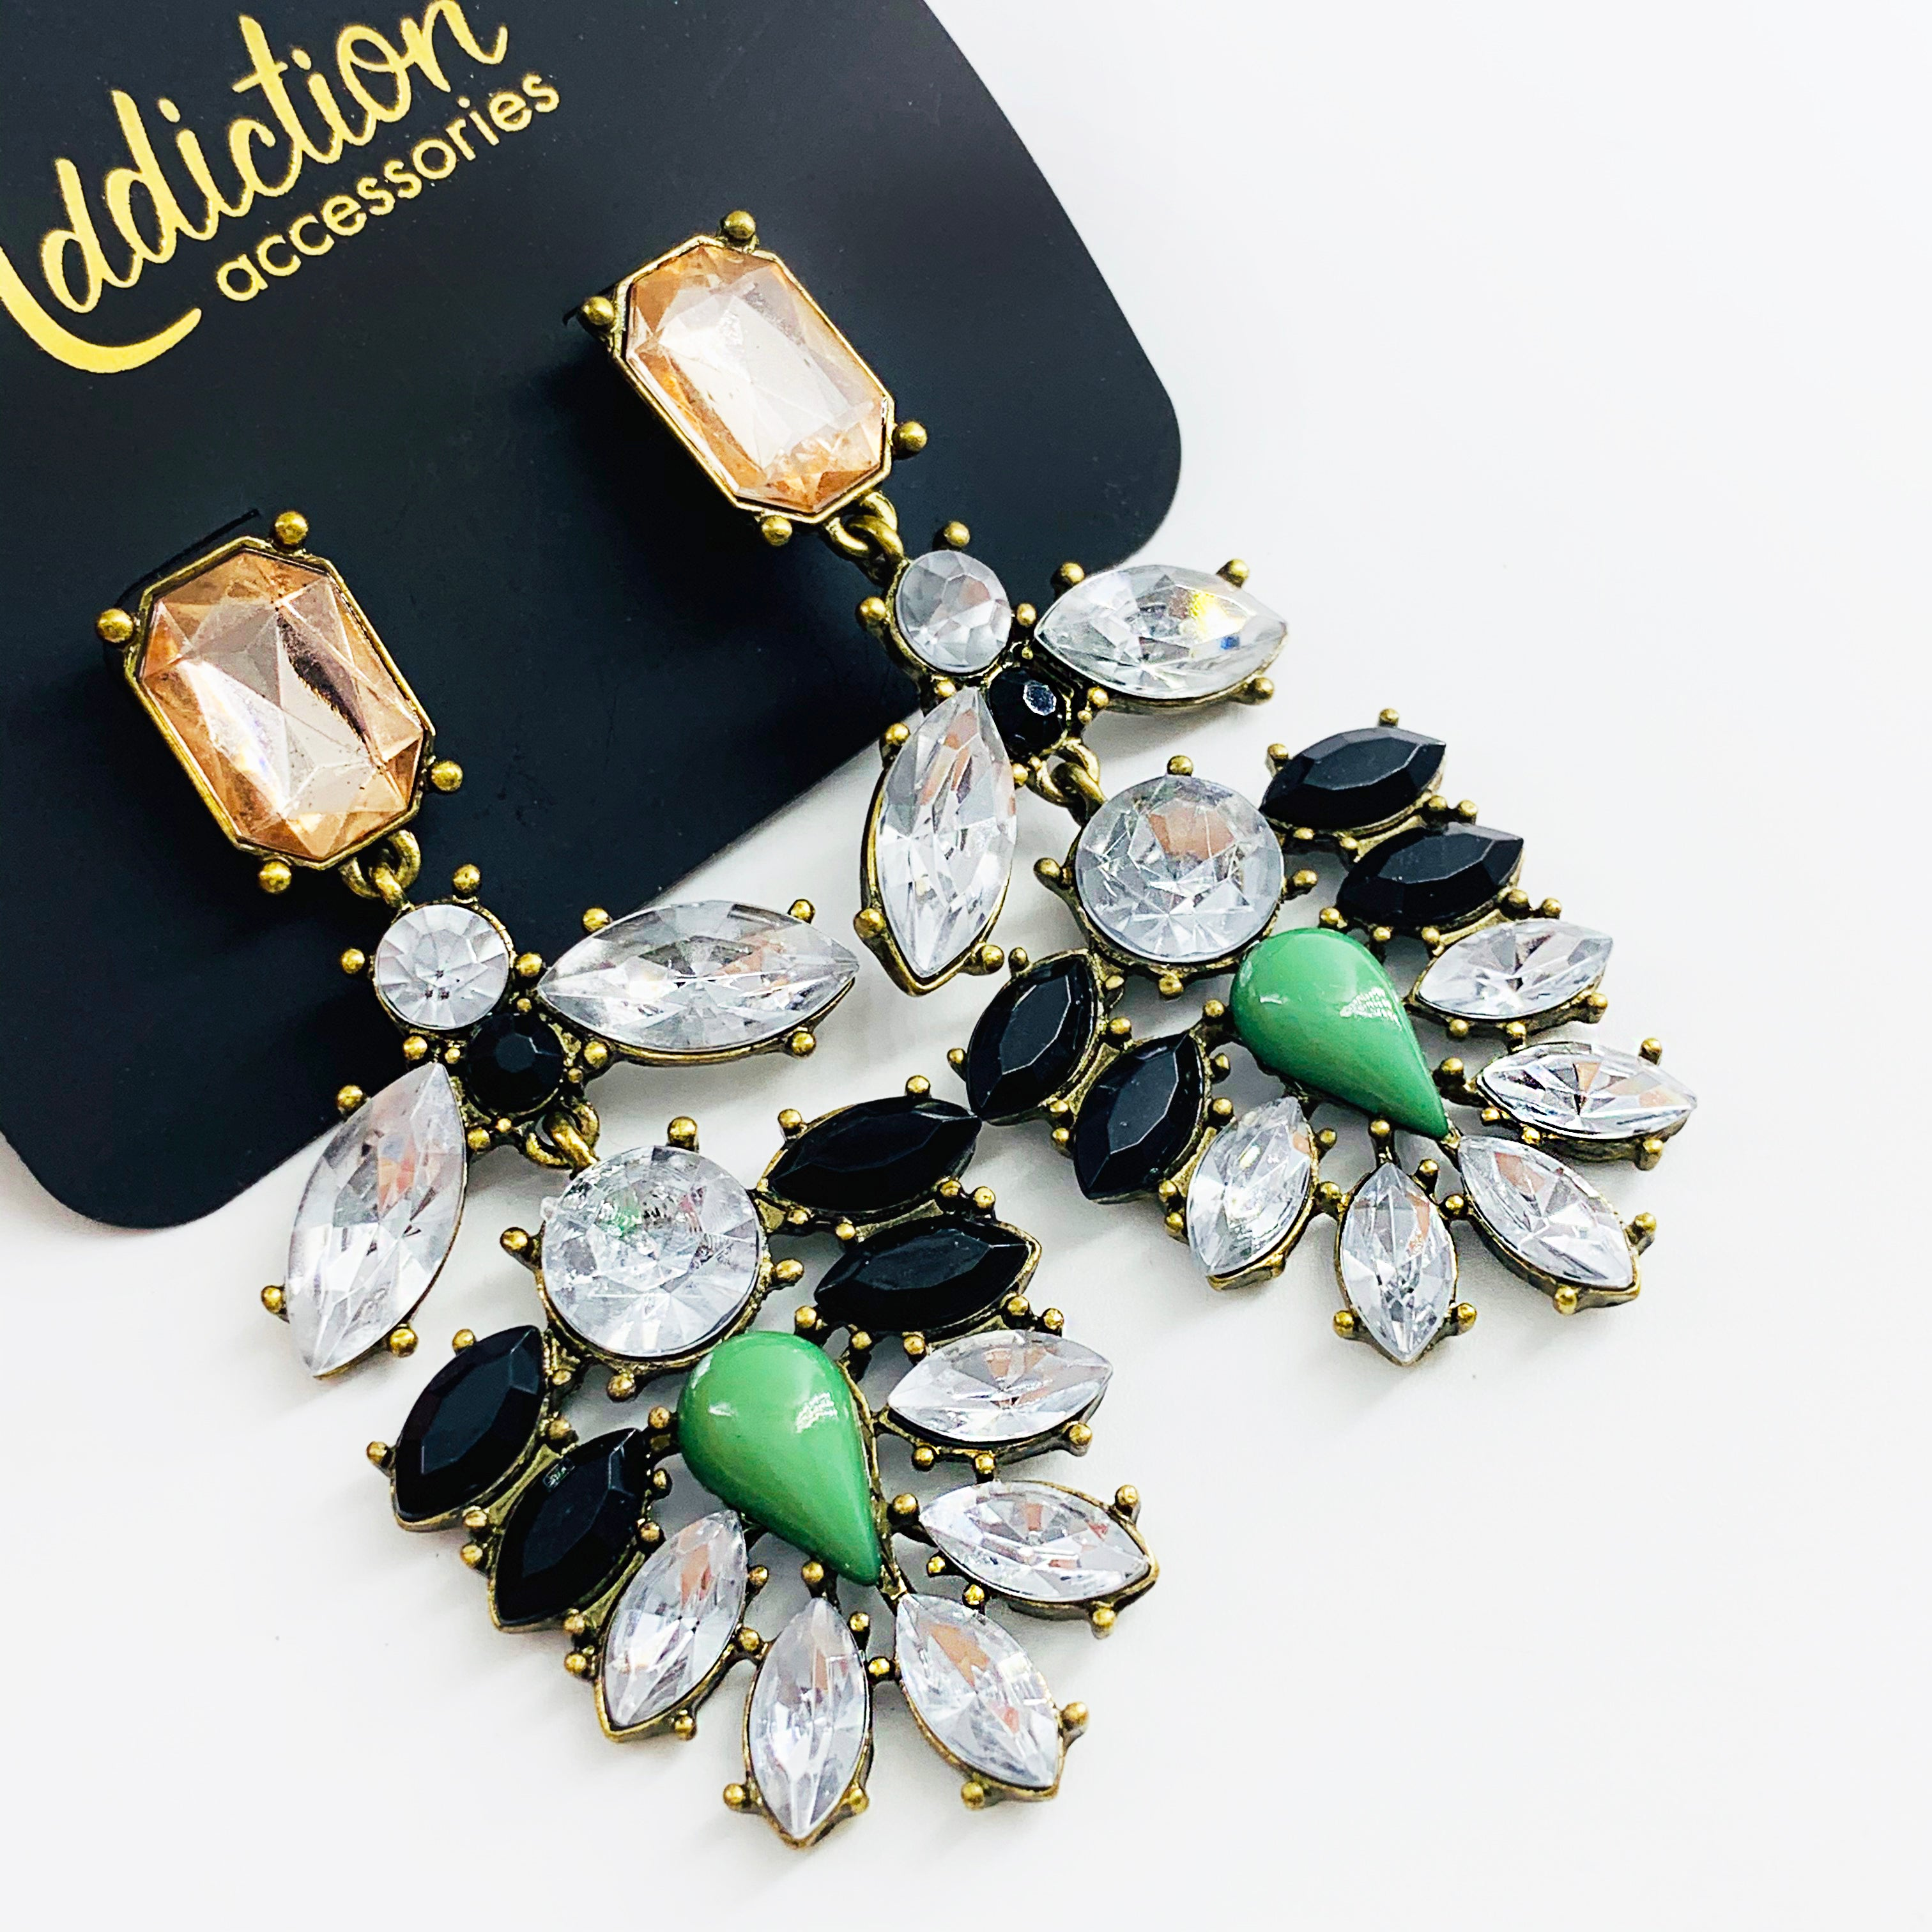 Earrings with faceted black, white and green stones